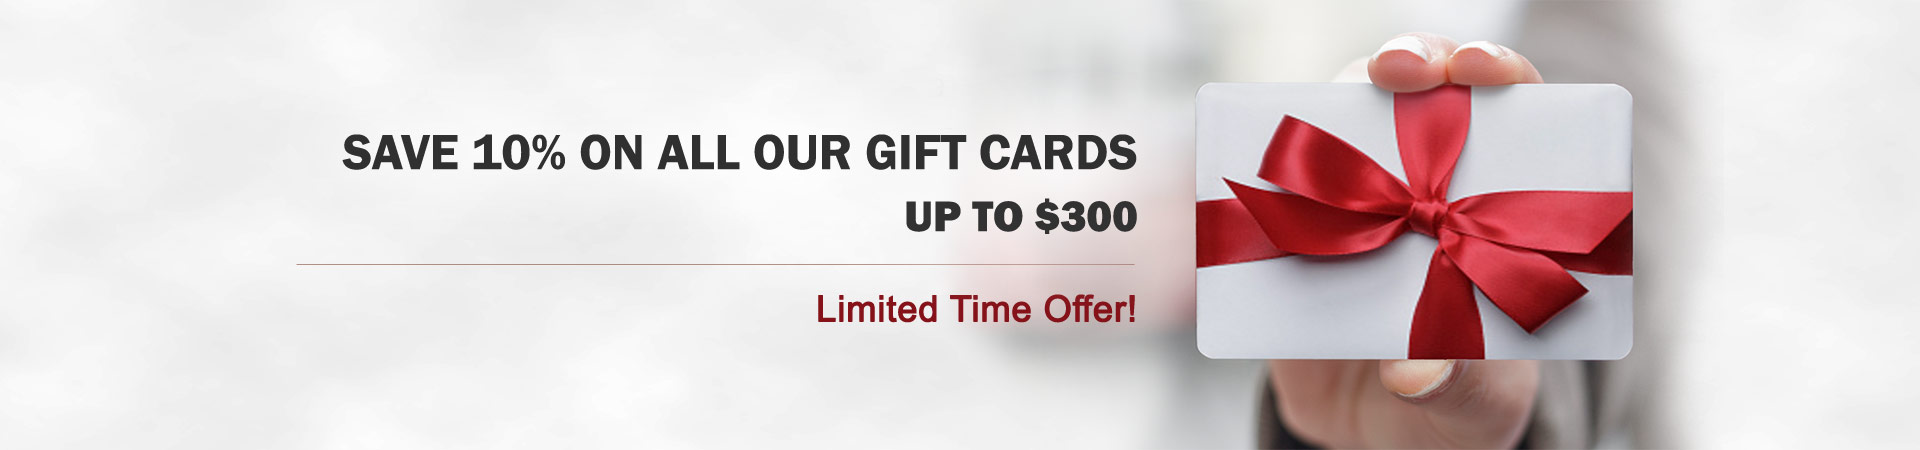 Gif Card Promotion 10 Percent Discount